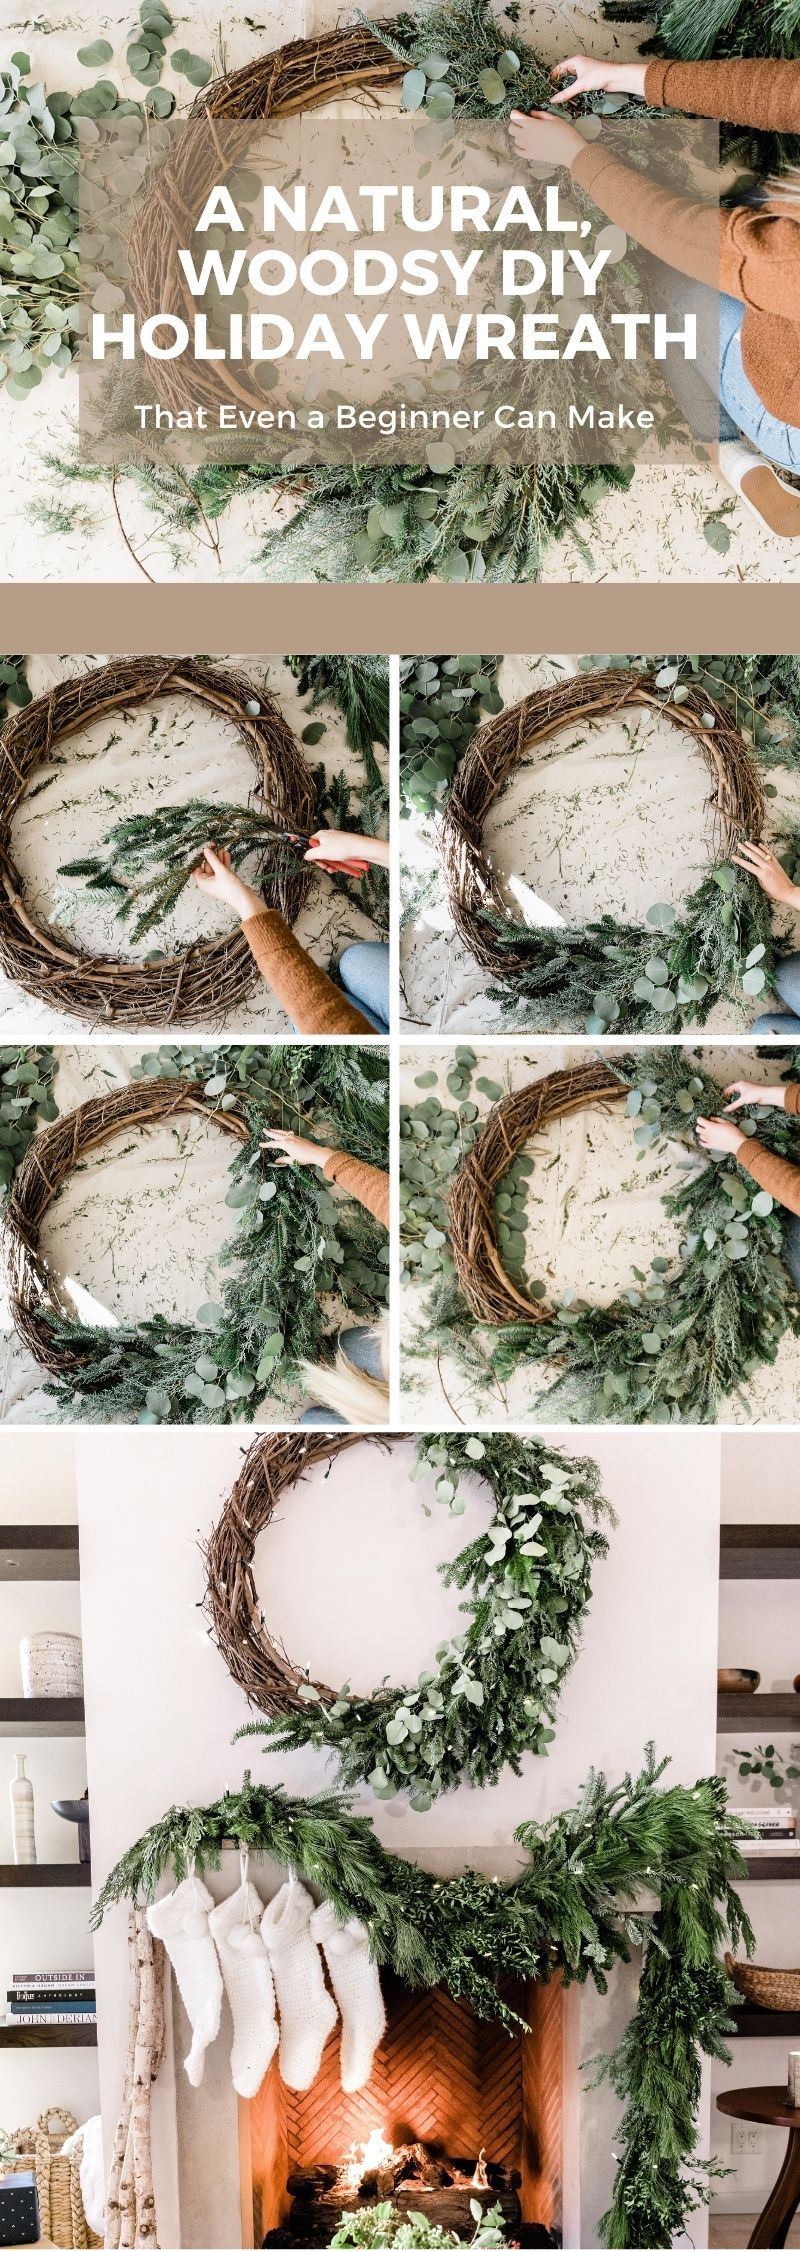 How To Make A Natural Holiday Wreath Holiday Decor Camille Styles